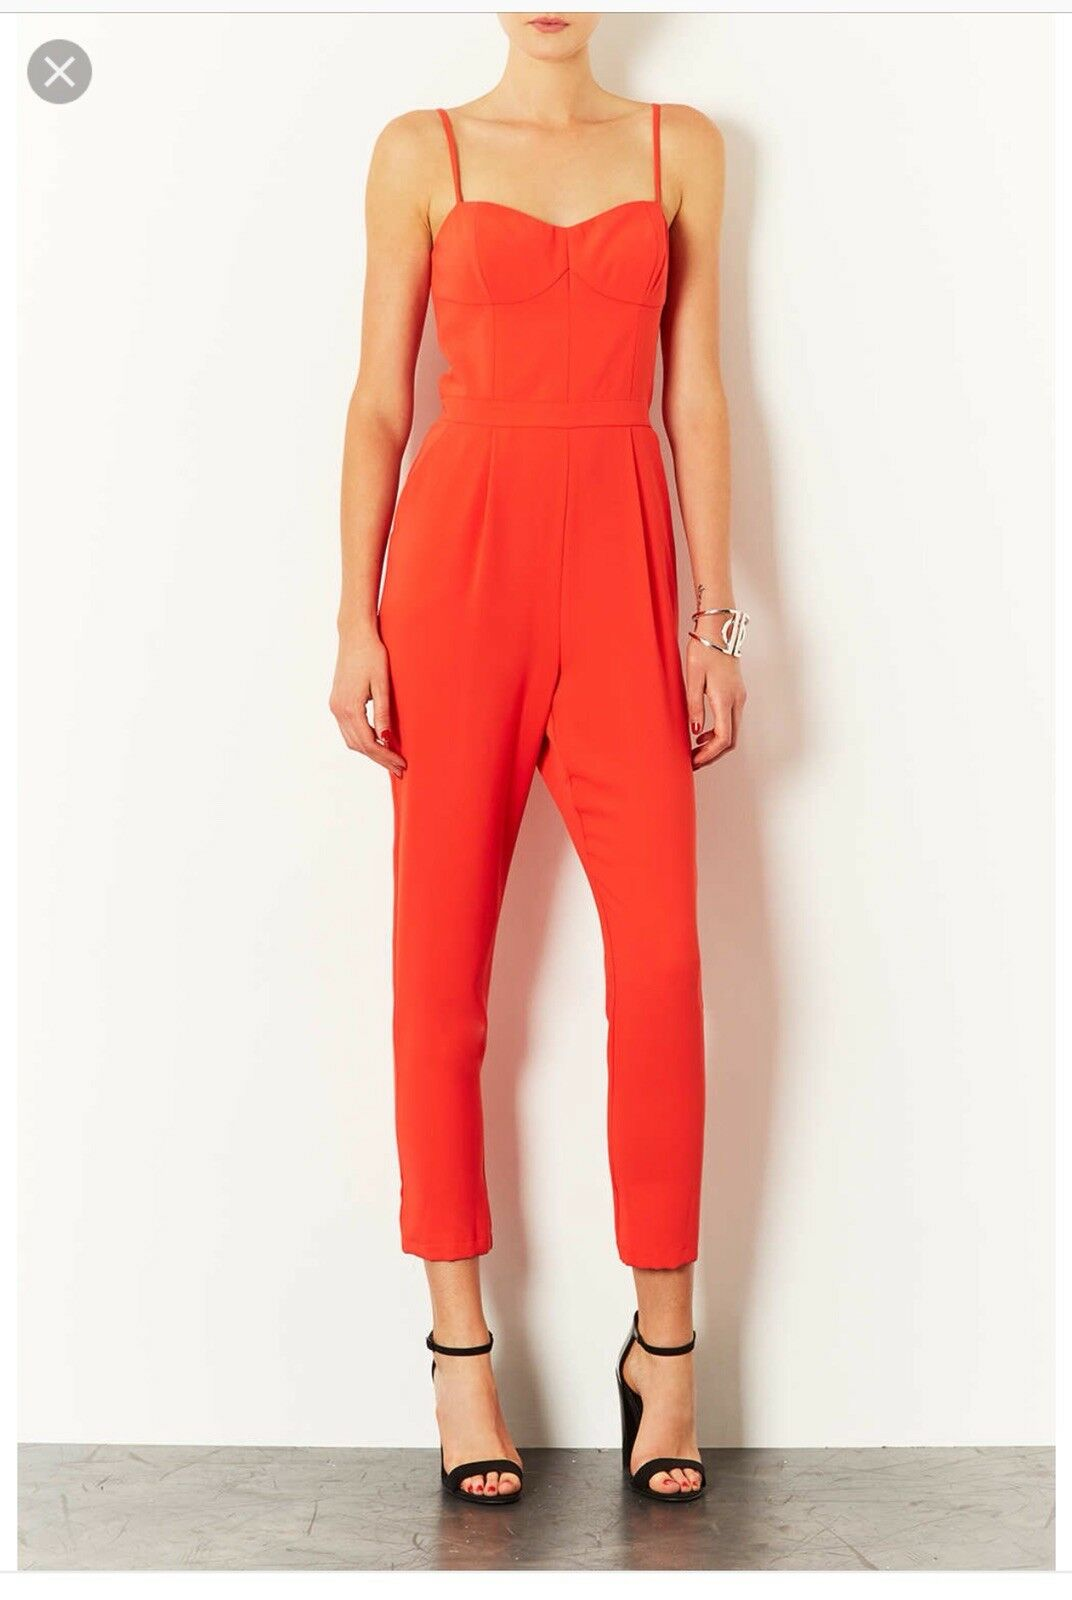 Topshop Strappy Coral Jumpsuit UK8